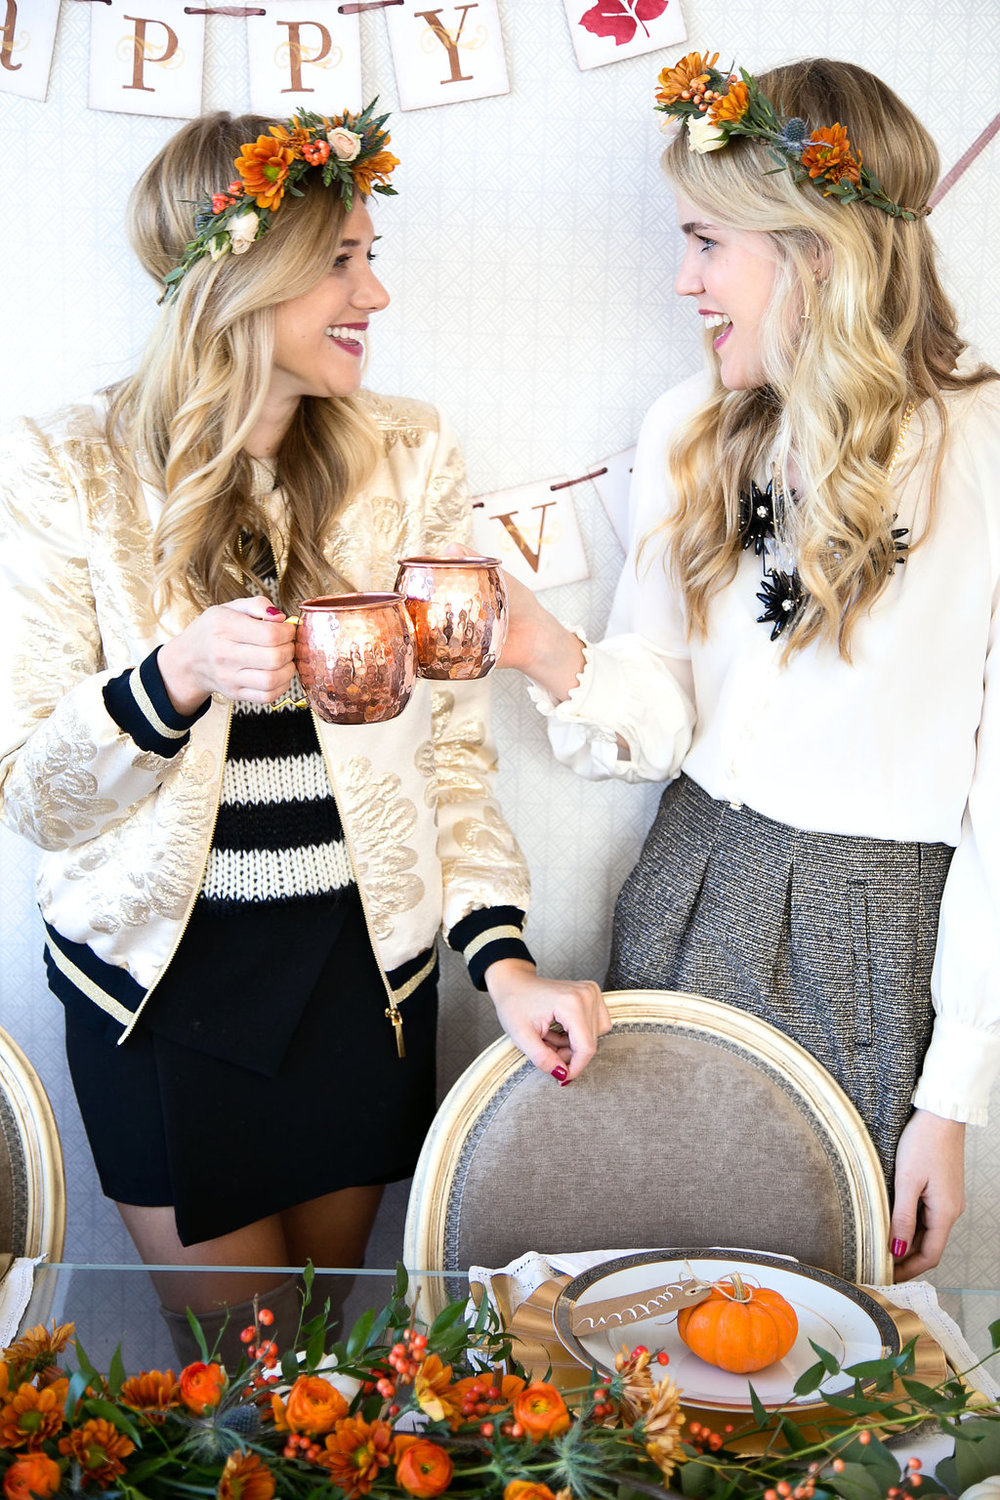 Cheers to #Friendsgiving with my co-host Katie Sands of @HonestlyKate